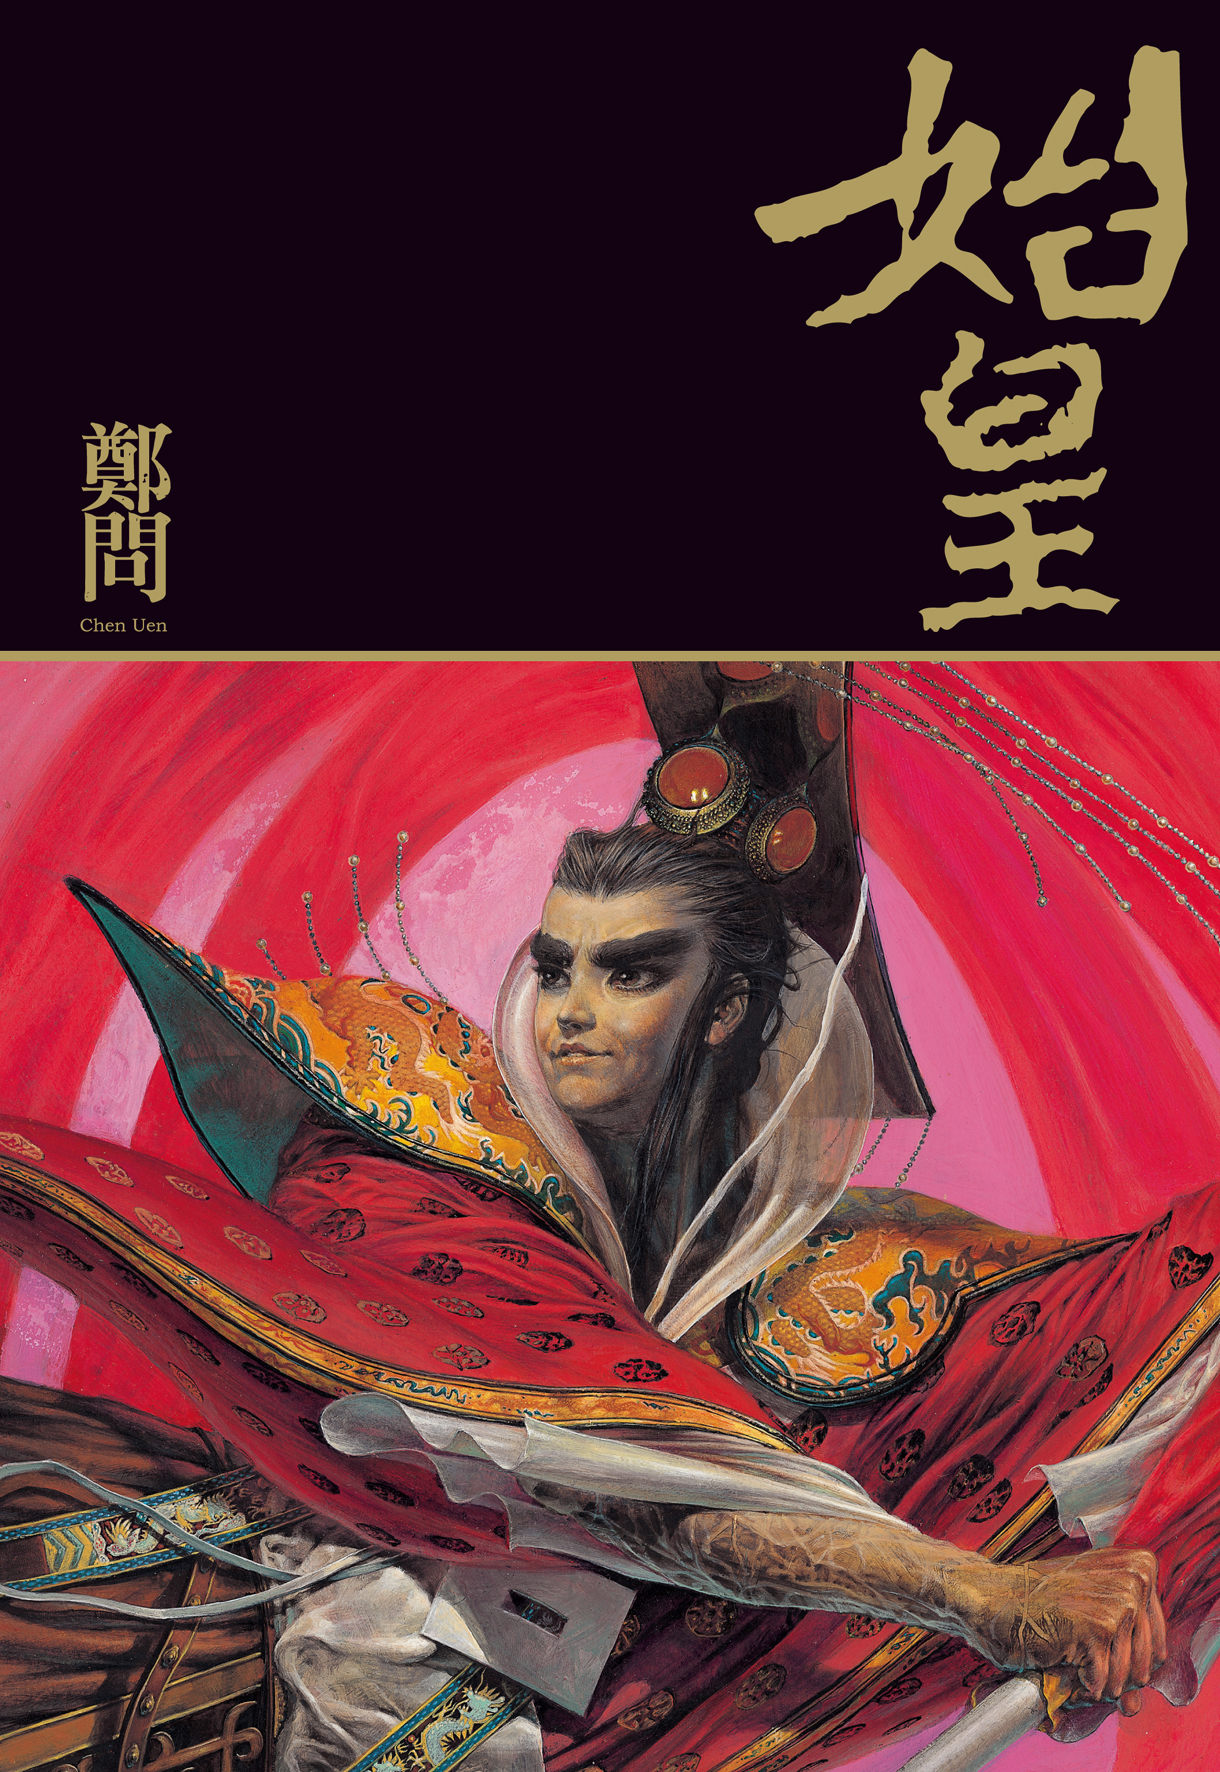 SHI HUANG: THE FIRST EMPEROR